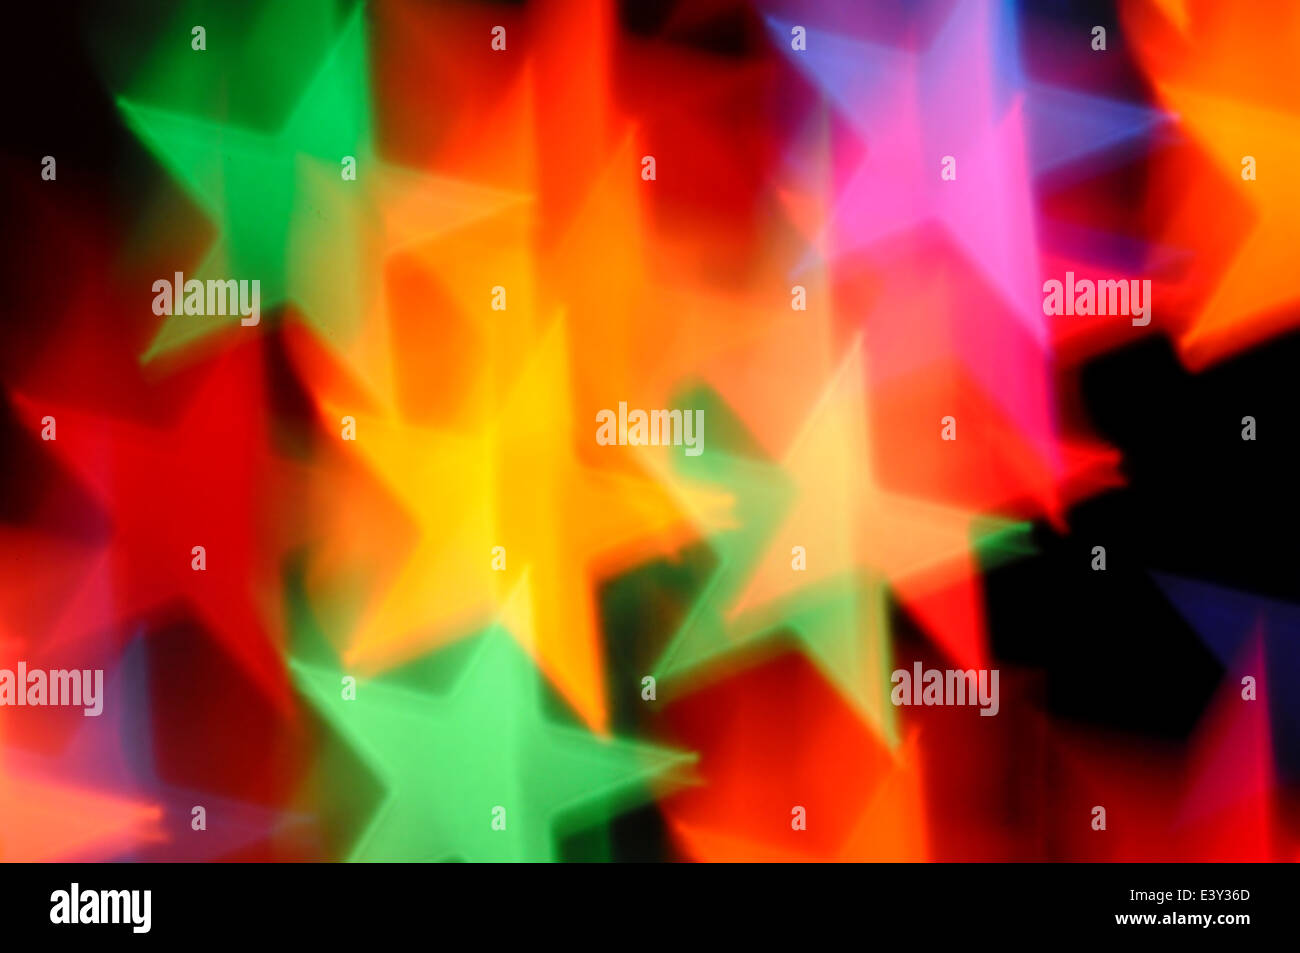 Falling stars abstract lights motion blur. Colorful festive background. Stock Photo